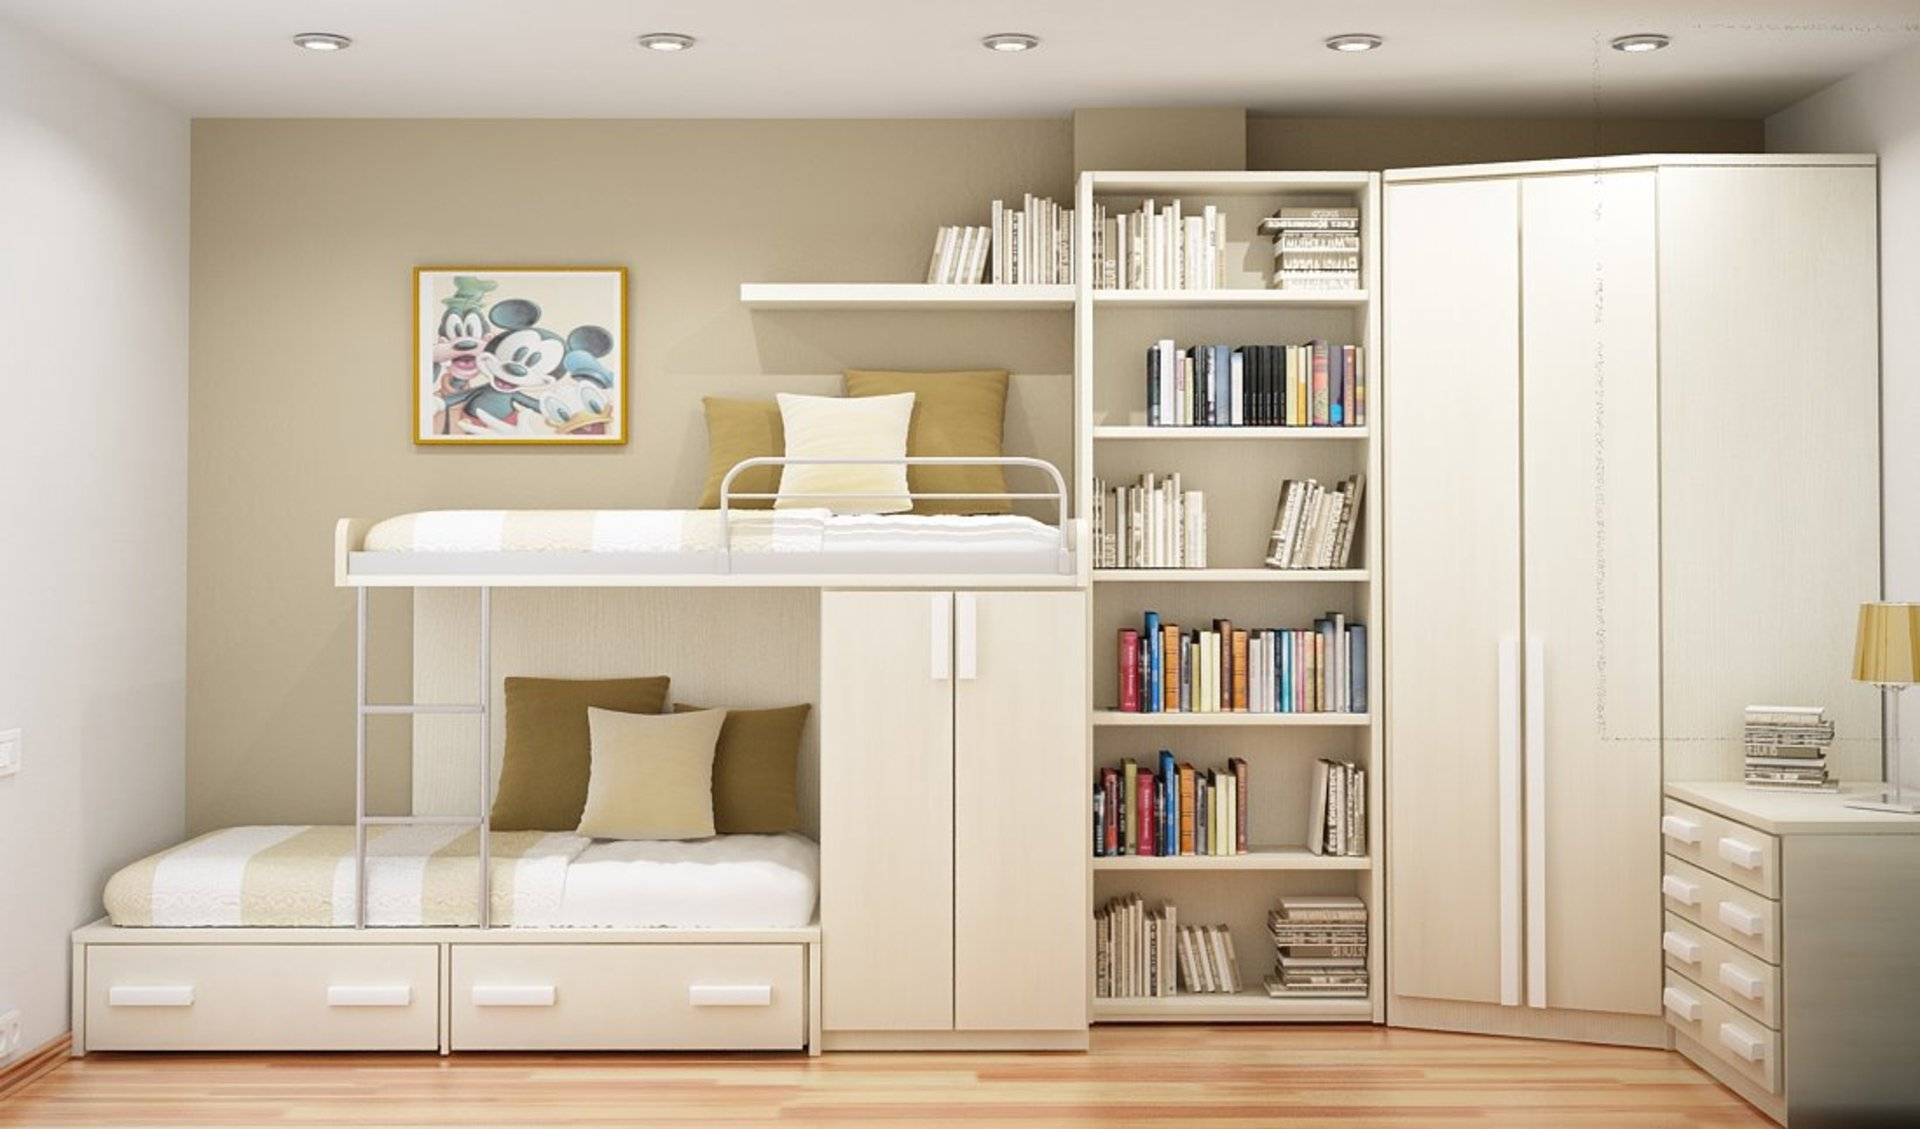 storage space for small bedrooms kids small bedroom storage ideas loft beds for small bedrooms flooring laminate wood bedroom bookshelf ideas small bedroom storage ideas boys - Choosing Beds With Storage To Maximize Space